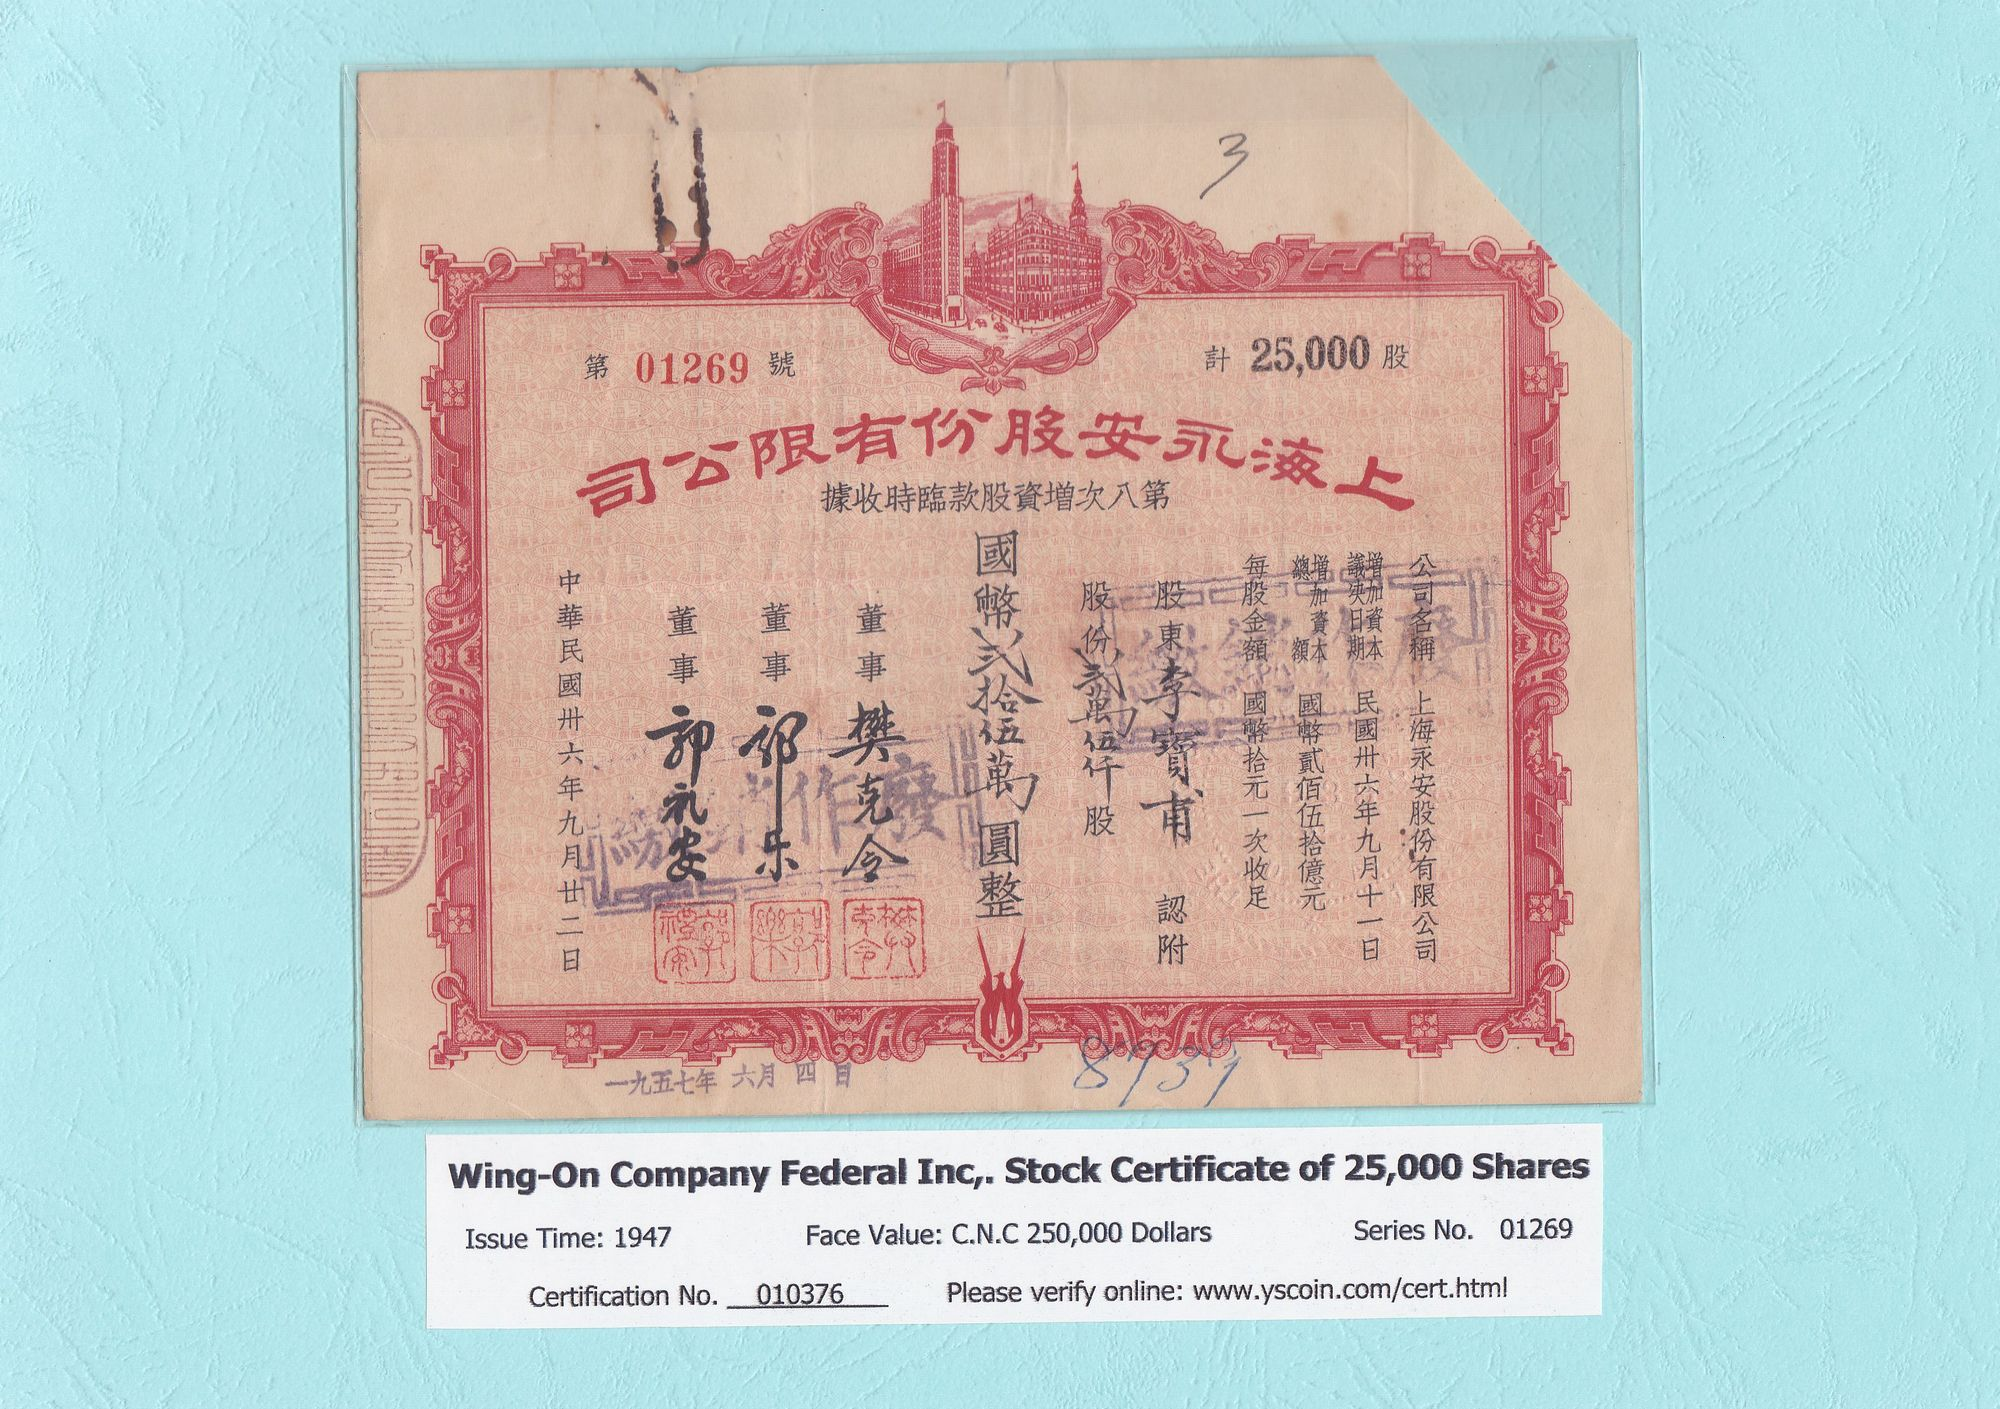 010376, Wing-On Company Federal Inc,. Stock Certificate of 100,000 Shares